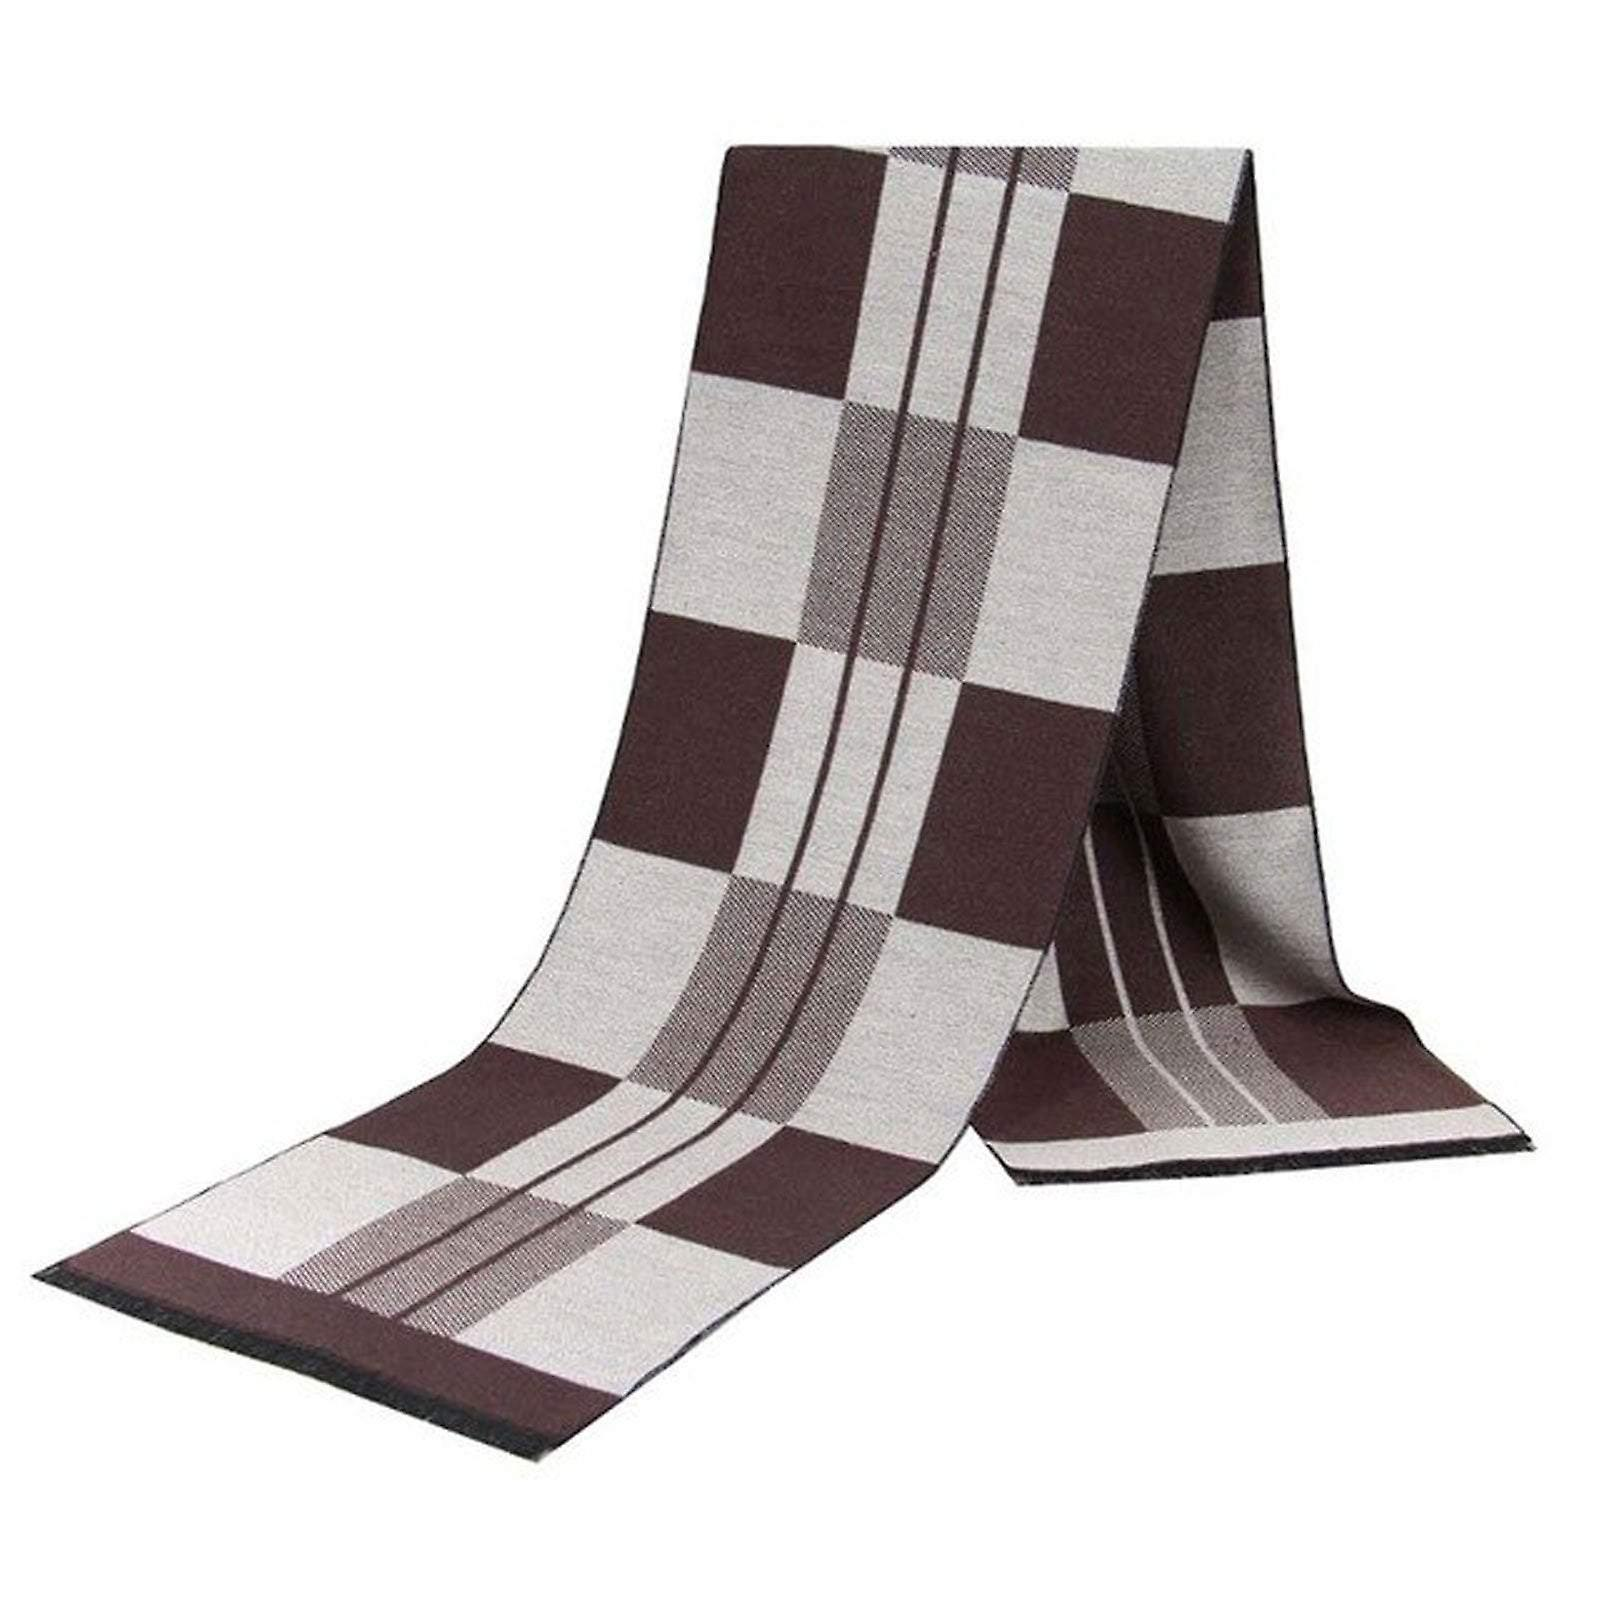 Oat & brown square pattern luxury bamboo men's scarf